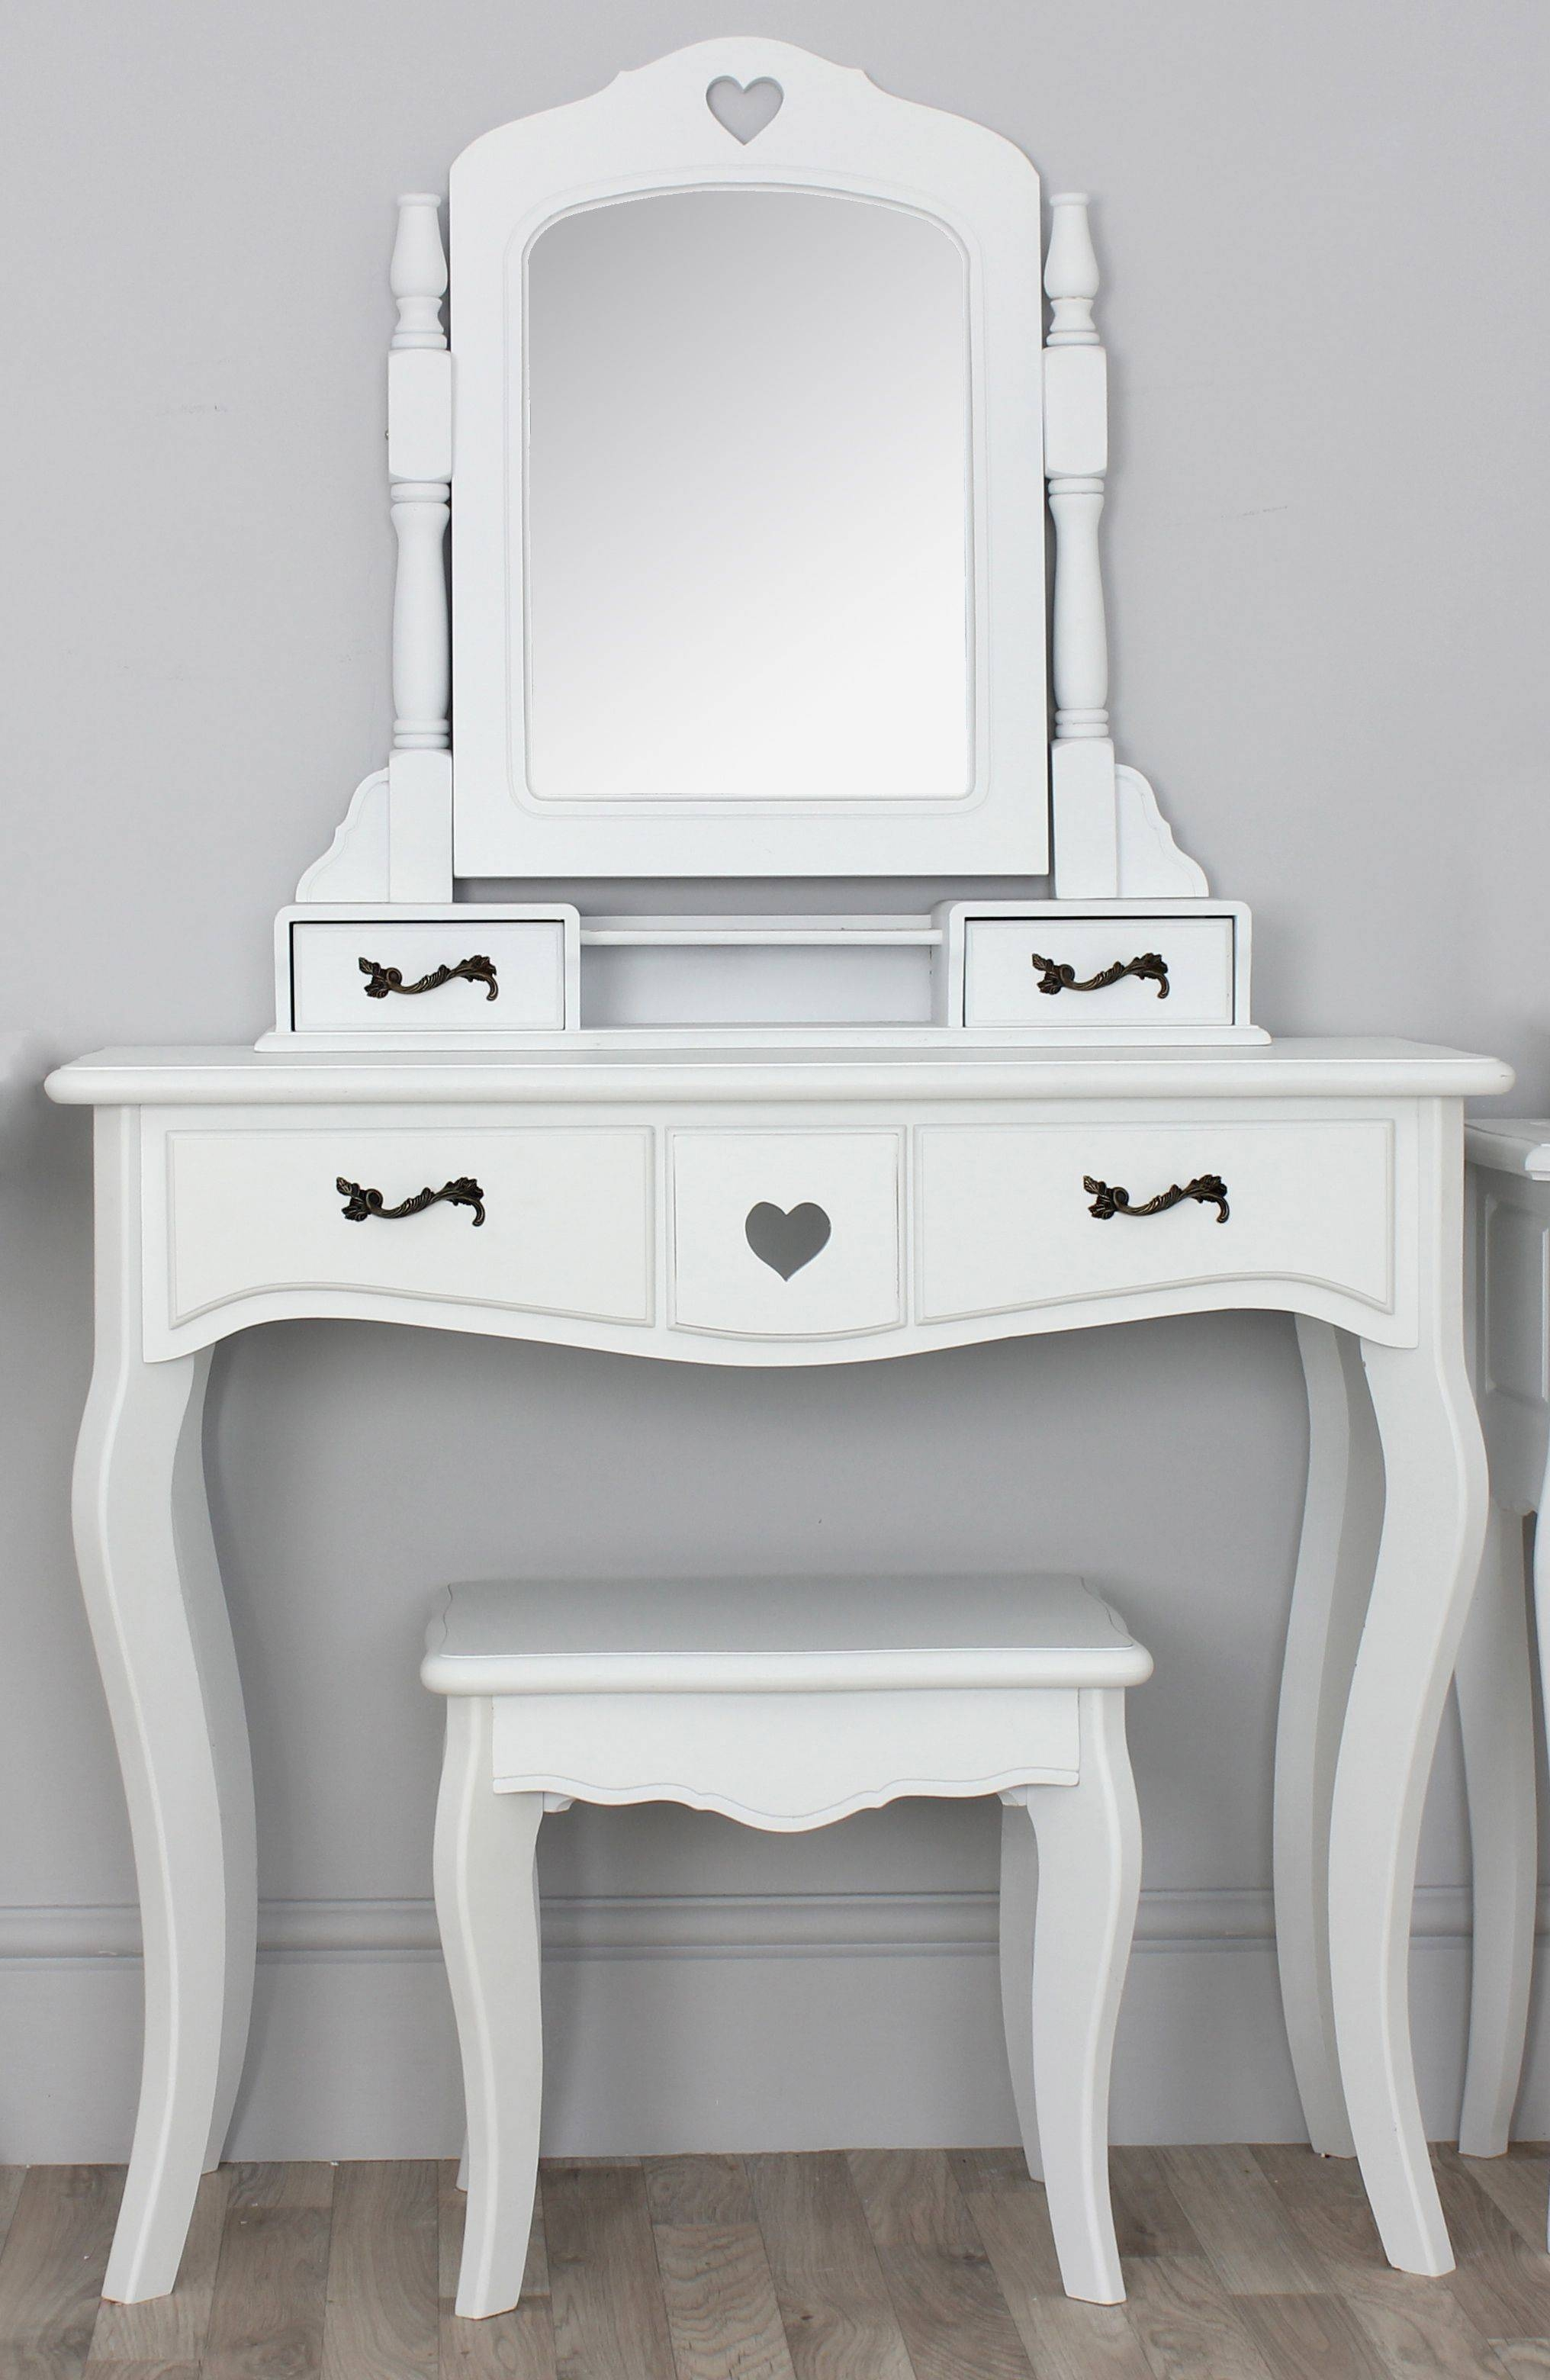 Bedroom Dressing Table Designs With Full Length Mirror For Girls intended for Full Length Antique Dressing Mirrors (Image 5 of 15)